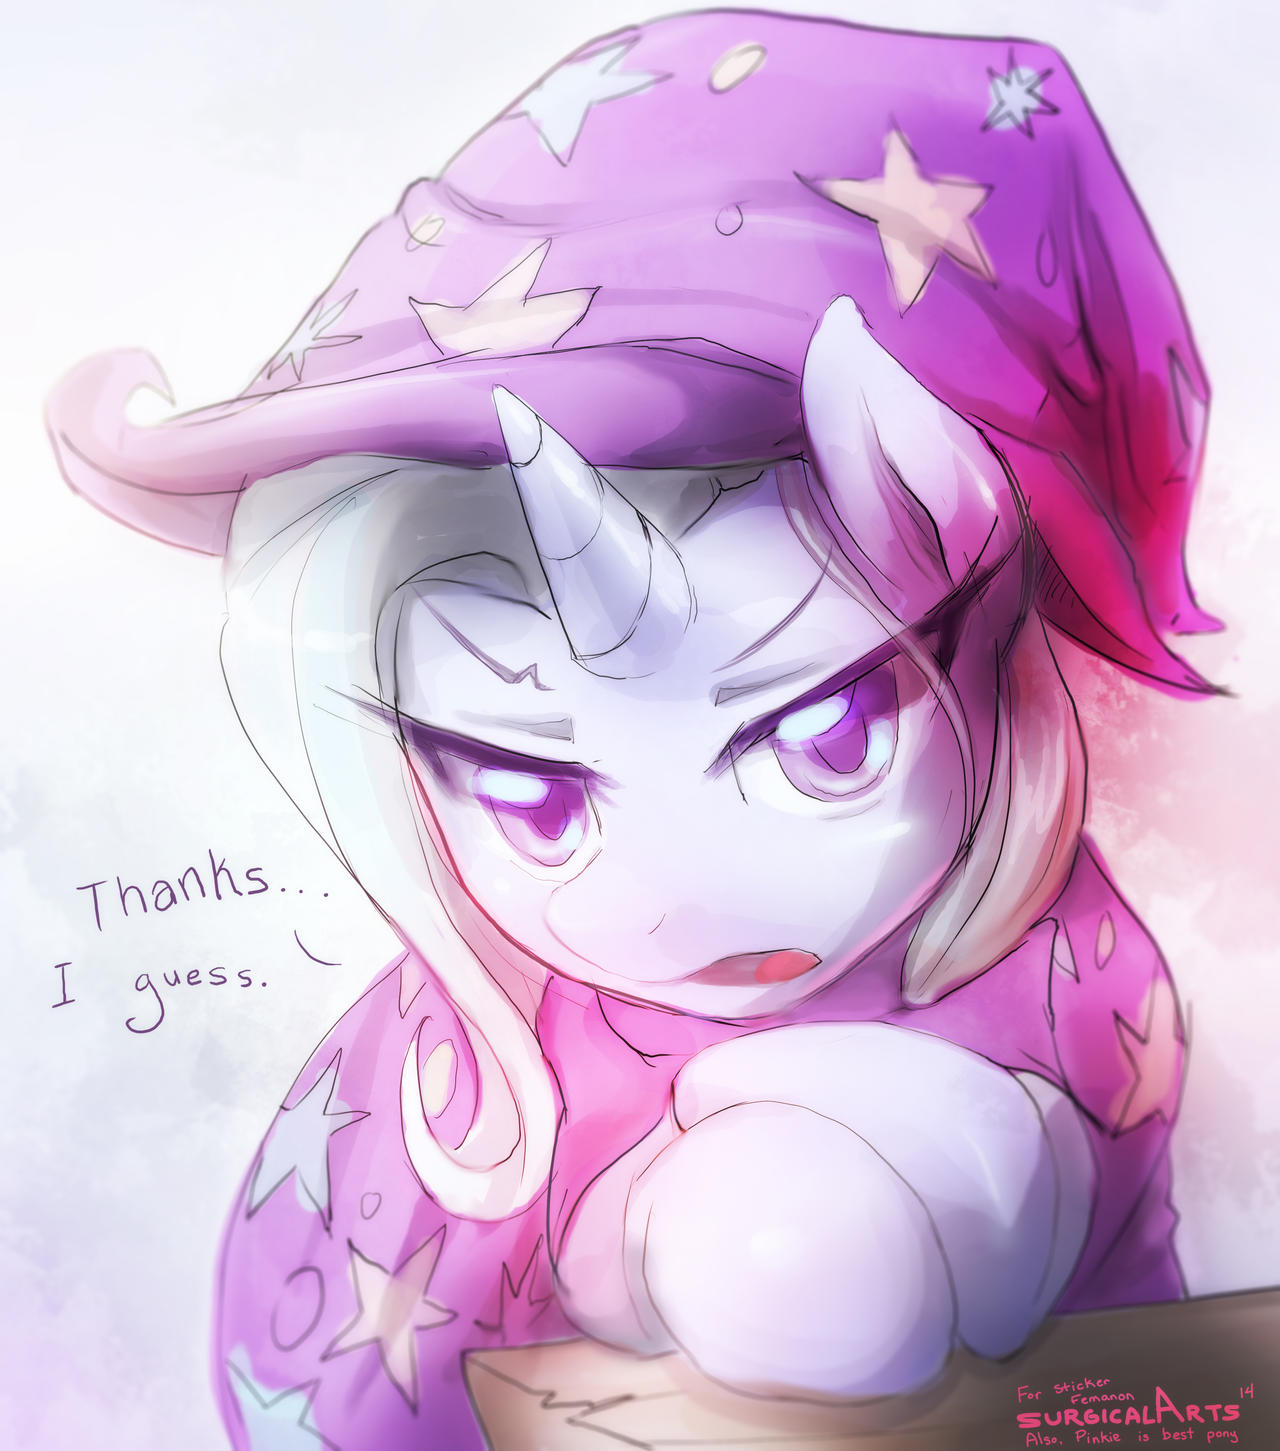 The Great and Tsundere Trixie by SurgicalArts